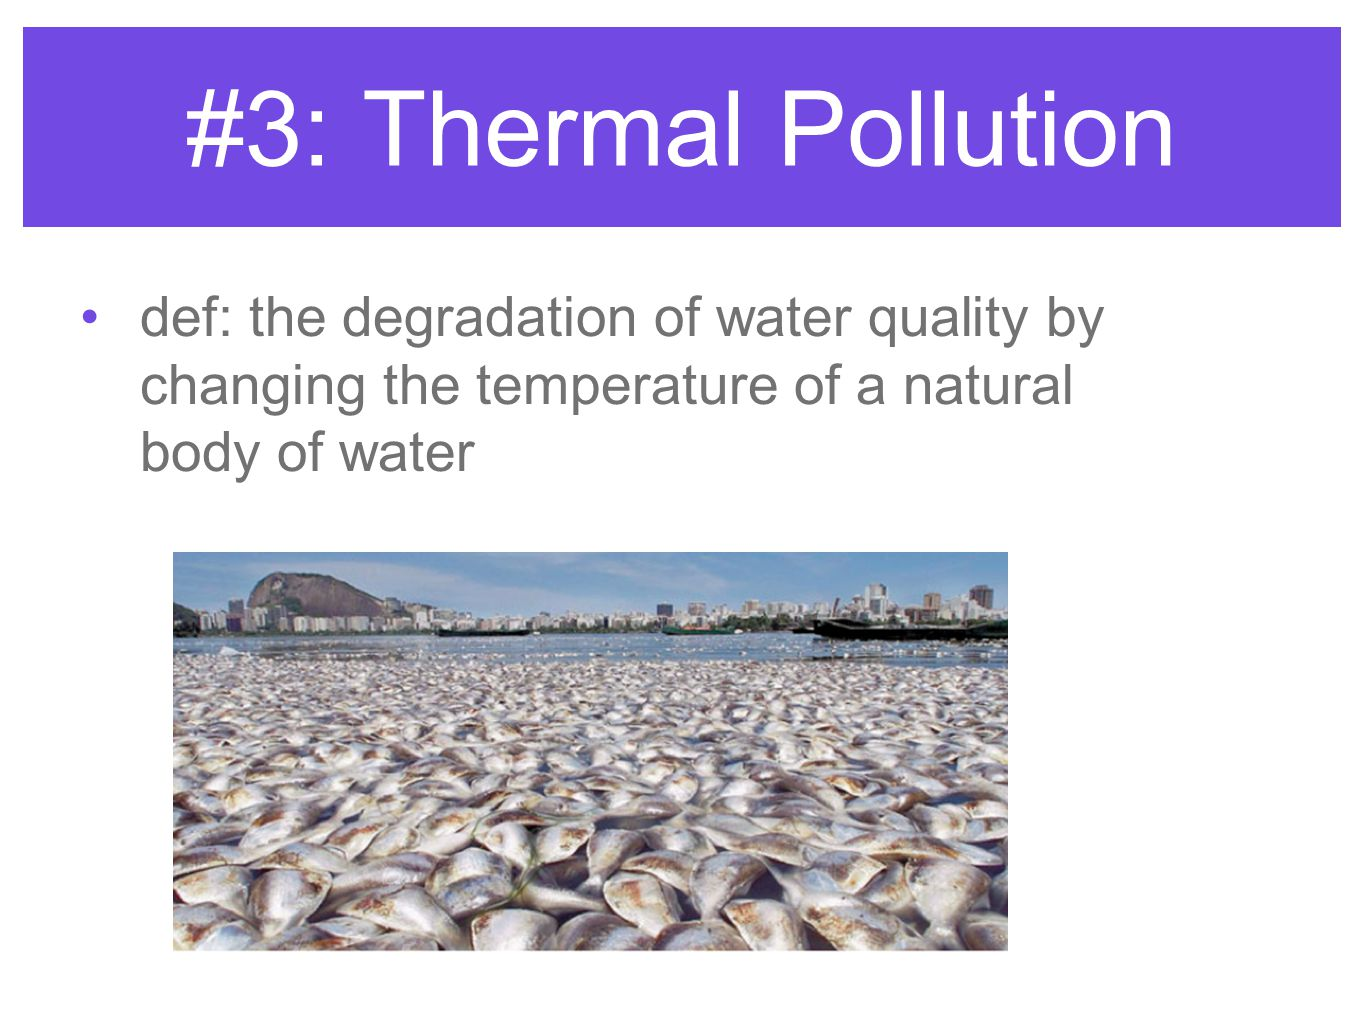 #3: Thermal Pollution def: the degradation of water quality by changing the temperature of a natural body of water.